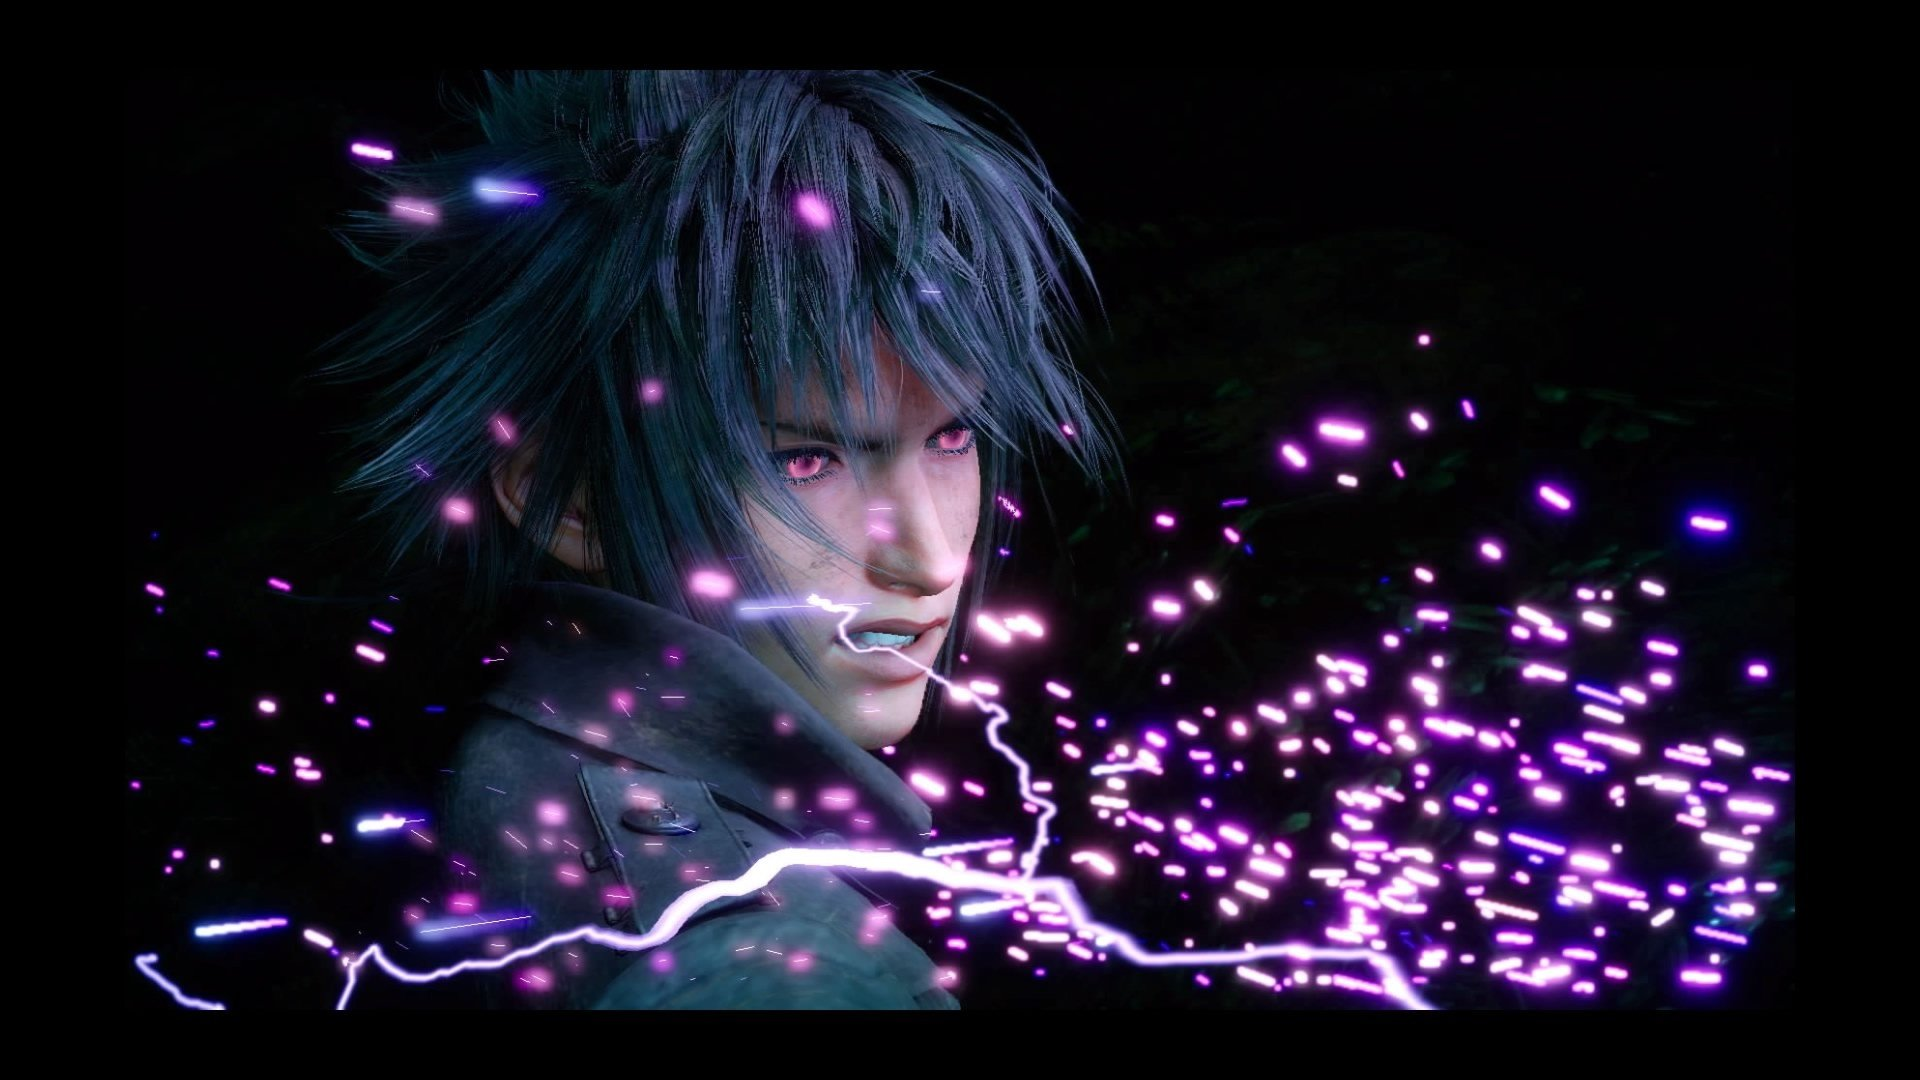 117 Final Fantasy Xv Hd Wallpapers: Final Fantasy XV, Noctis, Final Fantasy HD Wallpapers